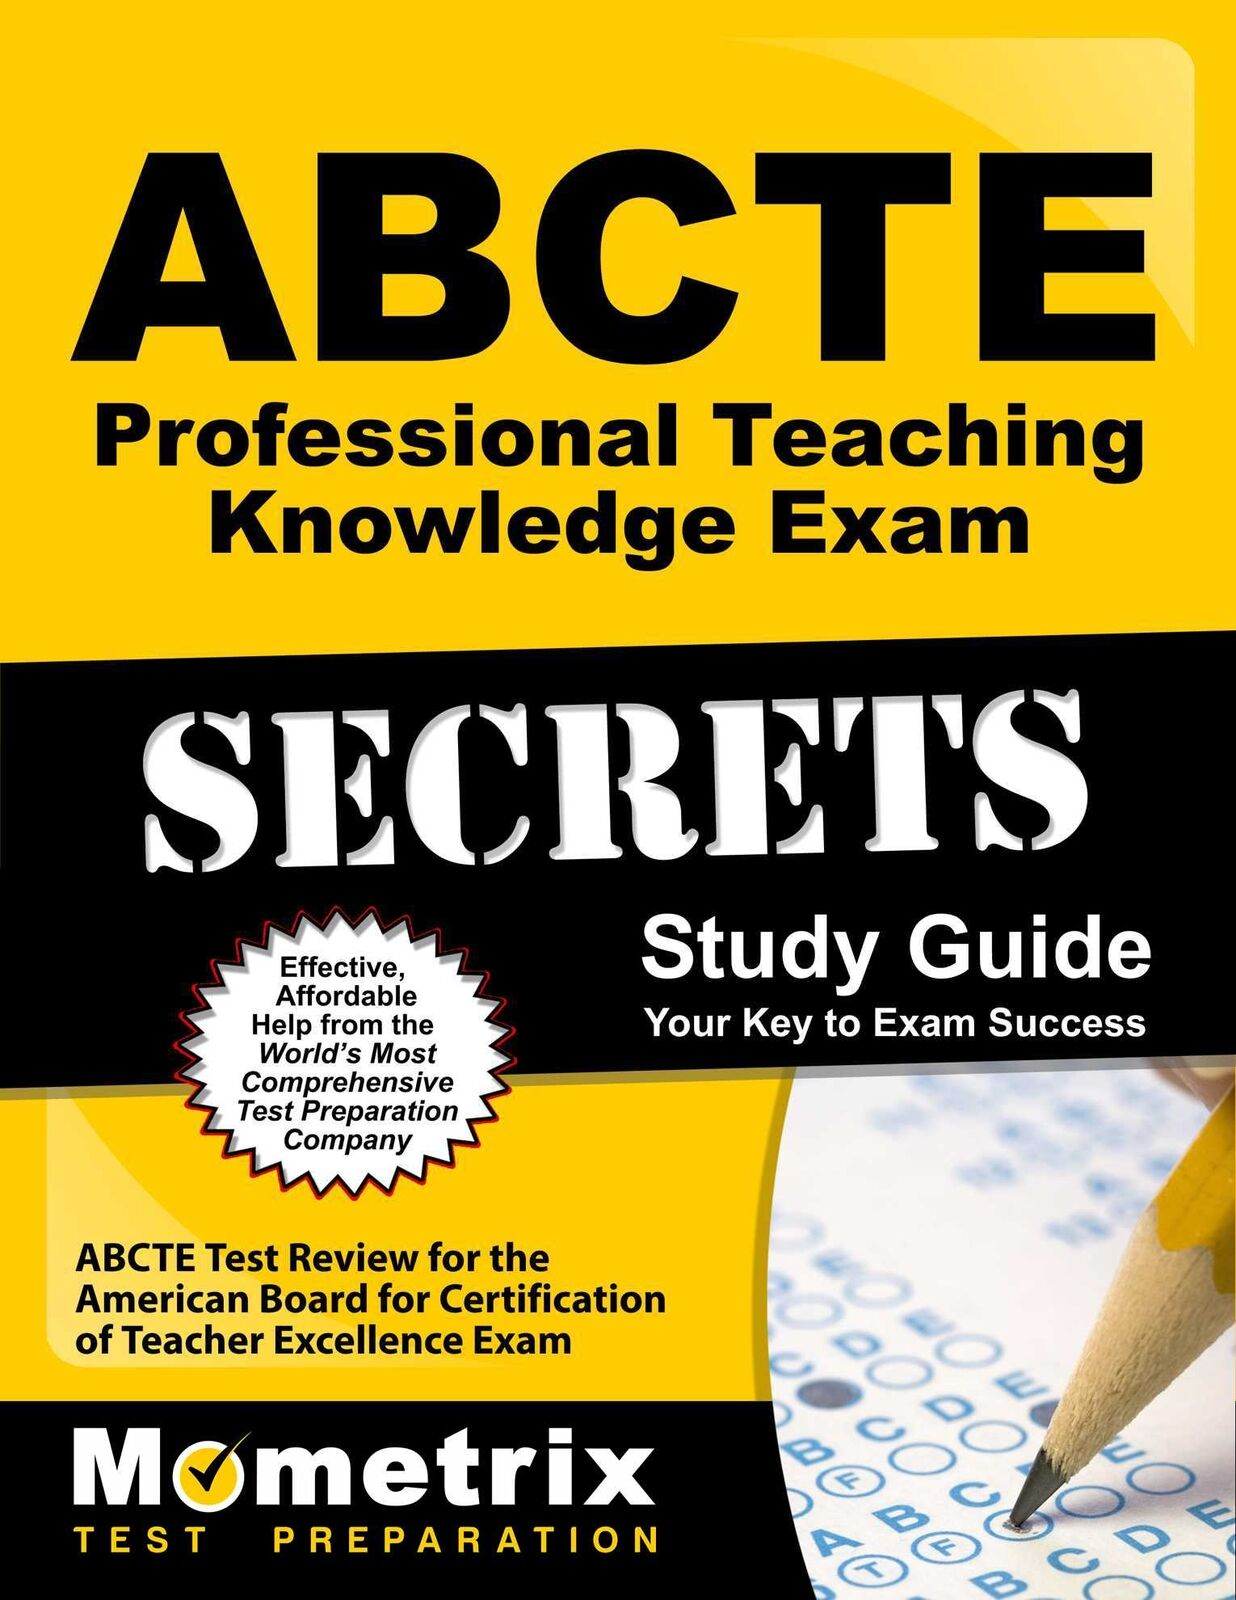 Abcte professional teaching knowledge exam secrets study guide picture 1 of 1 1betcityfo Images